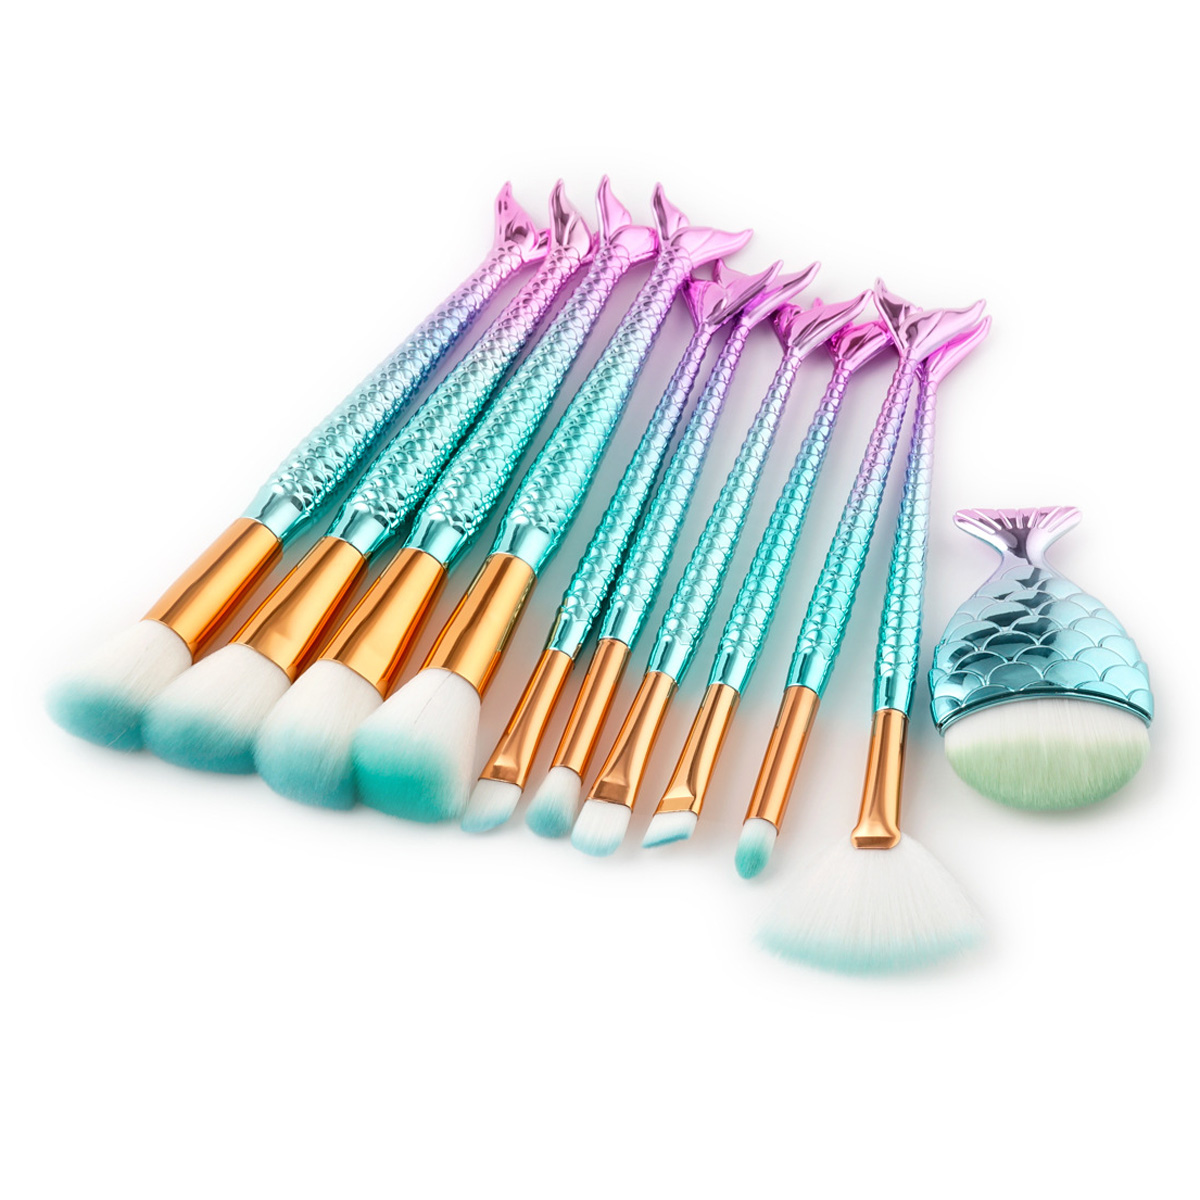 11Pc Mermaid Makeup Brush Set Eyebrow Eyeliner Blush Blending Contour Foundation Cosmetic Beauty Gradient Color Make Up Brushes купить